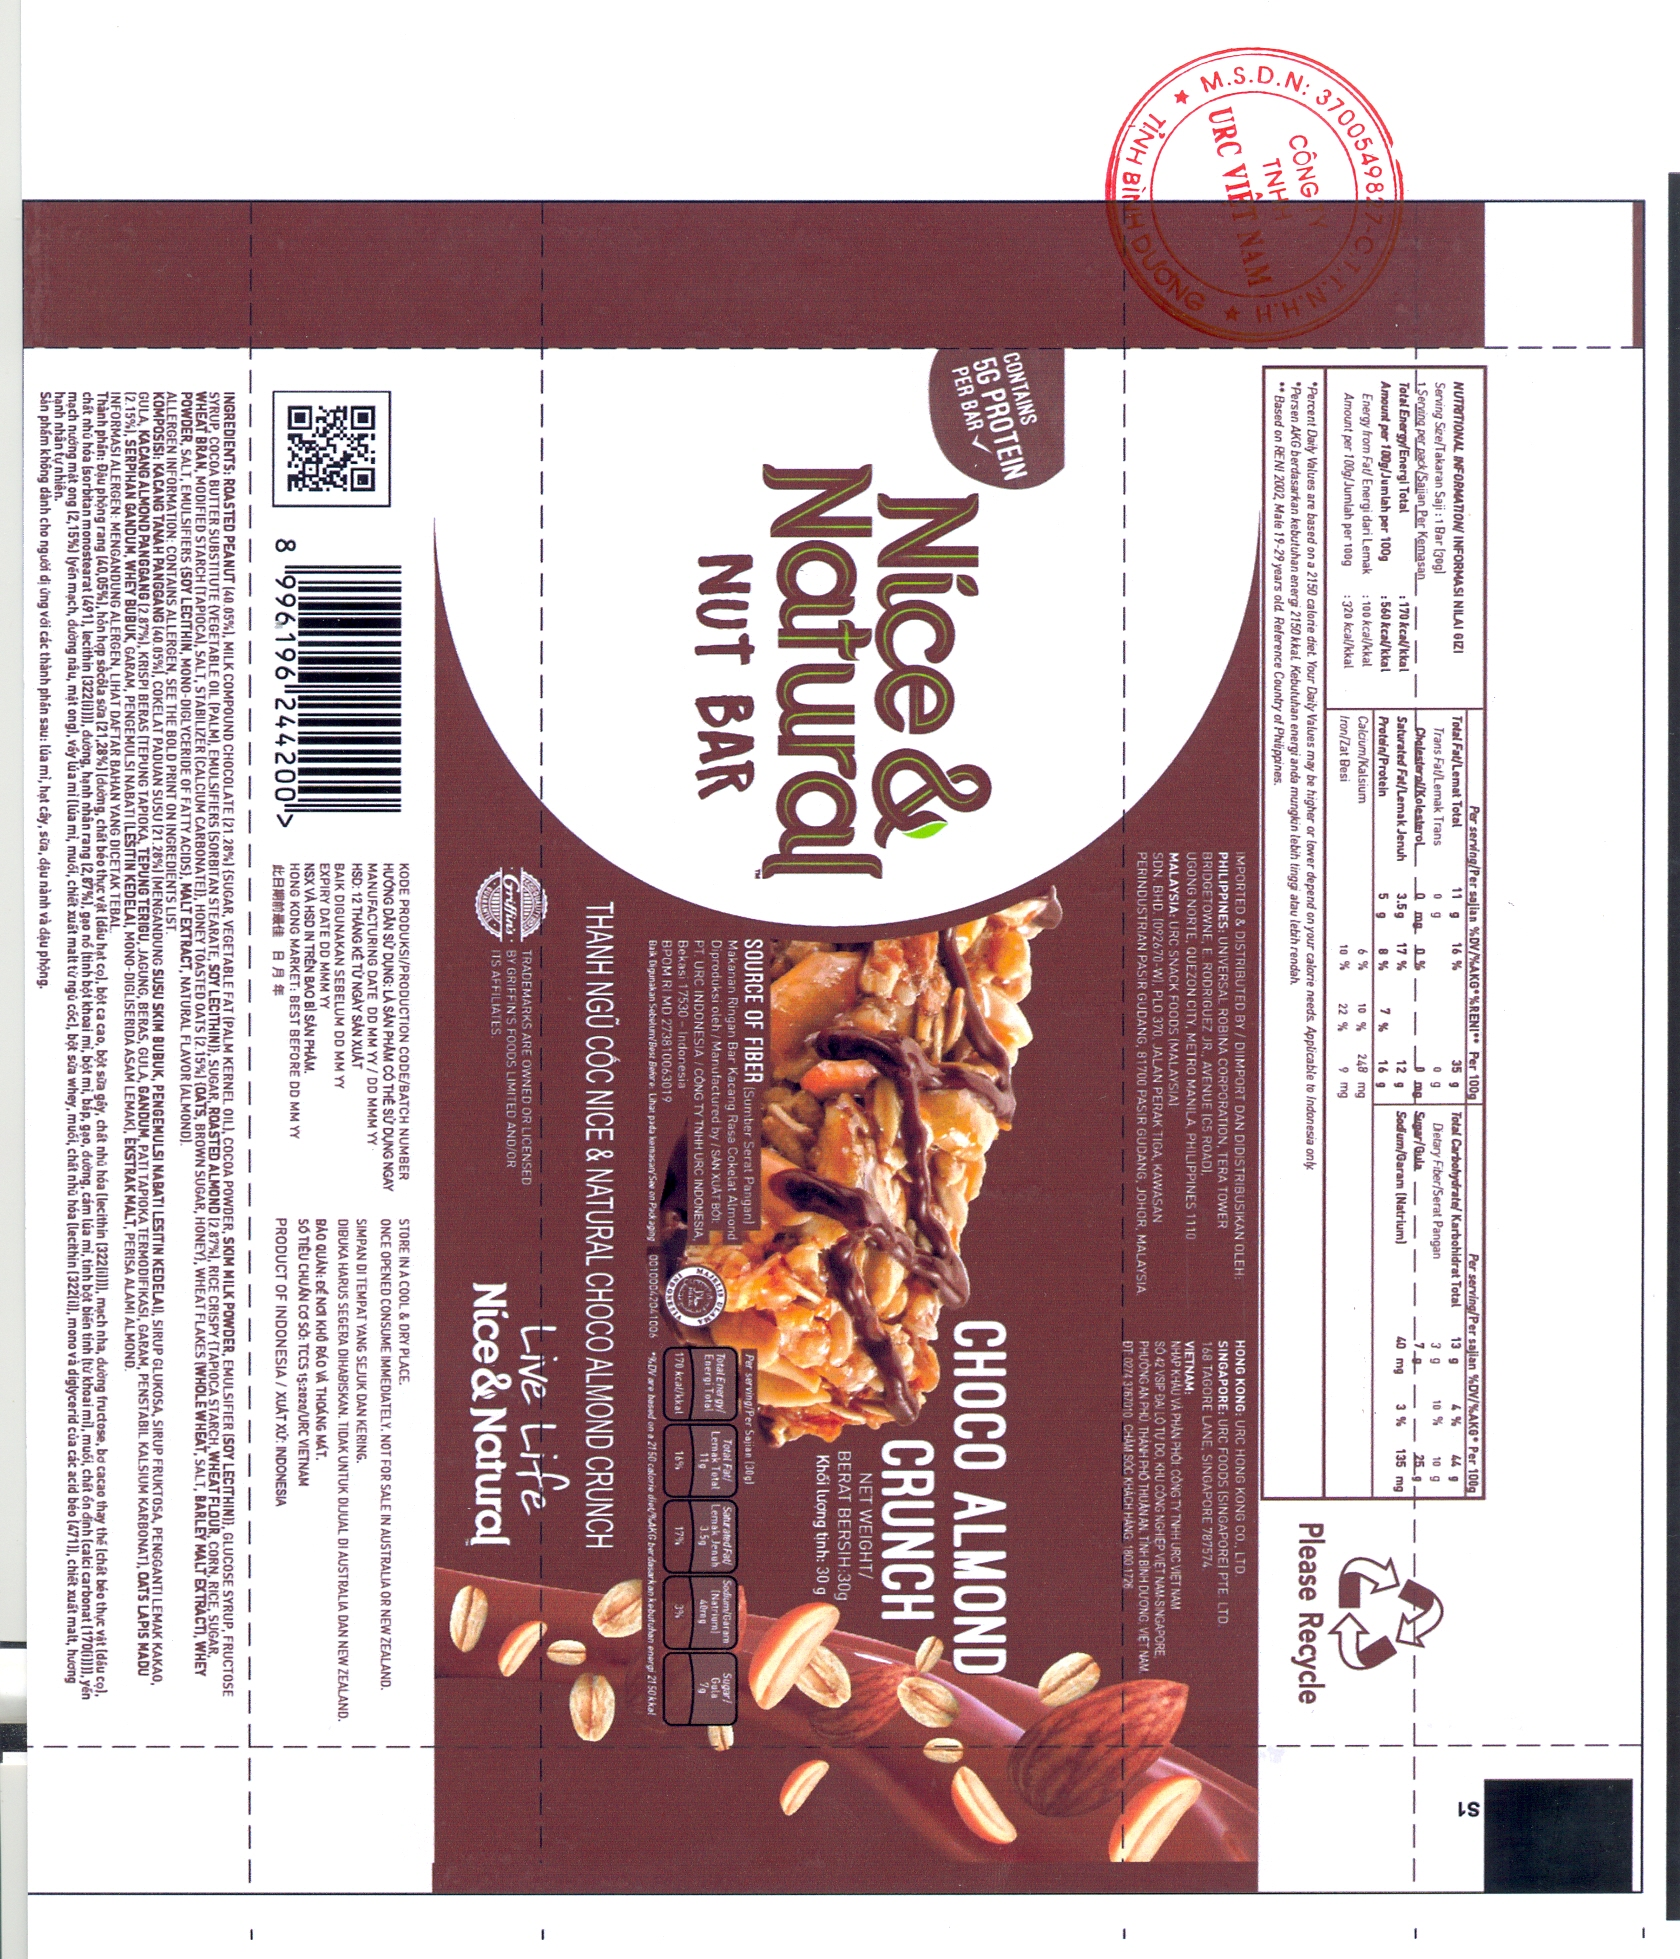 PRODUCT ANNOUNCEMENT NICE & NATURAL NUT BAR CHOCO ALMOND CRUNCH